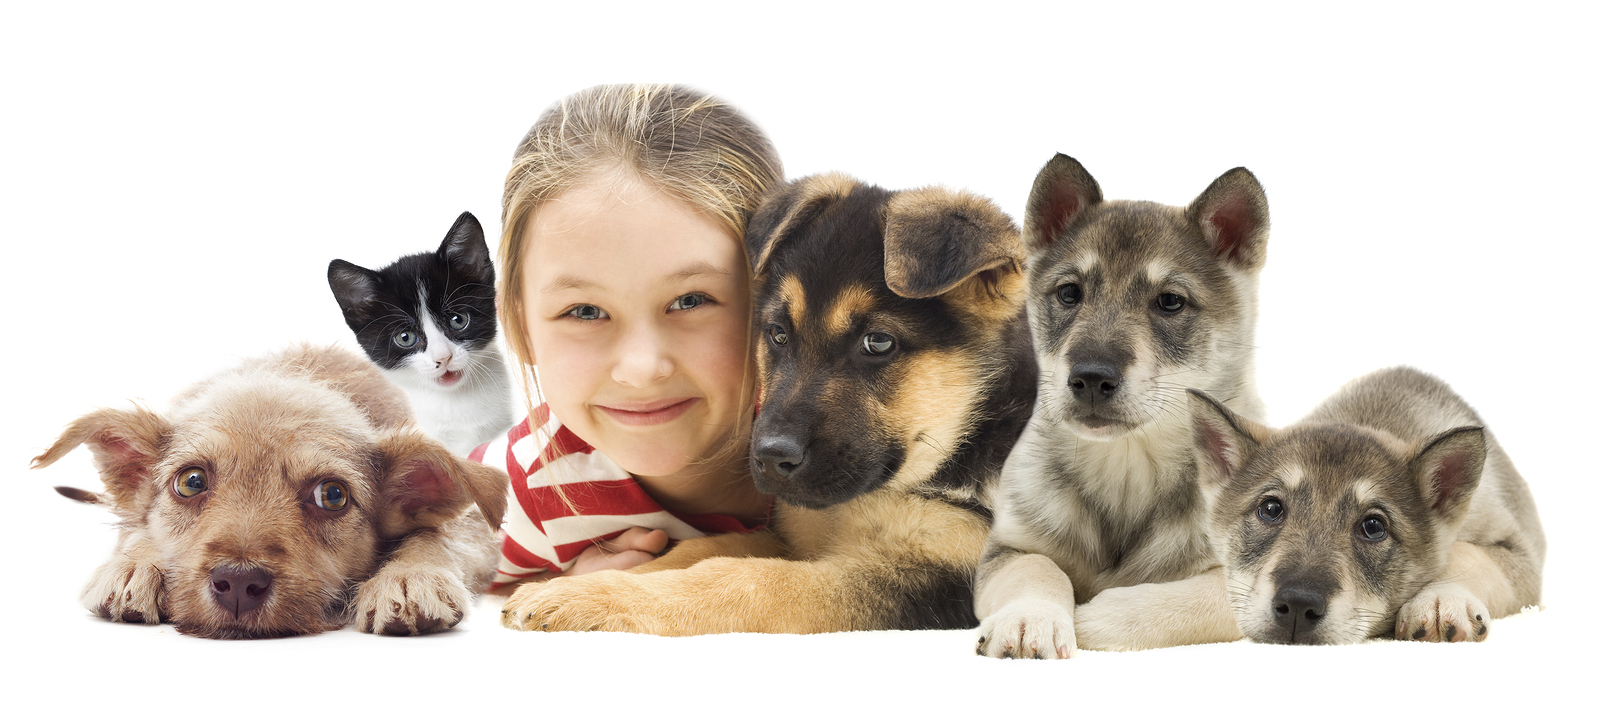 child with puppies and kittens